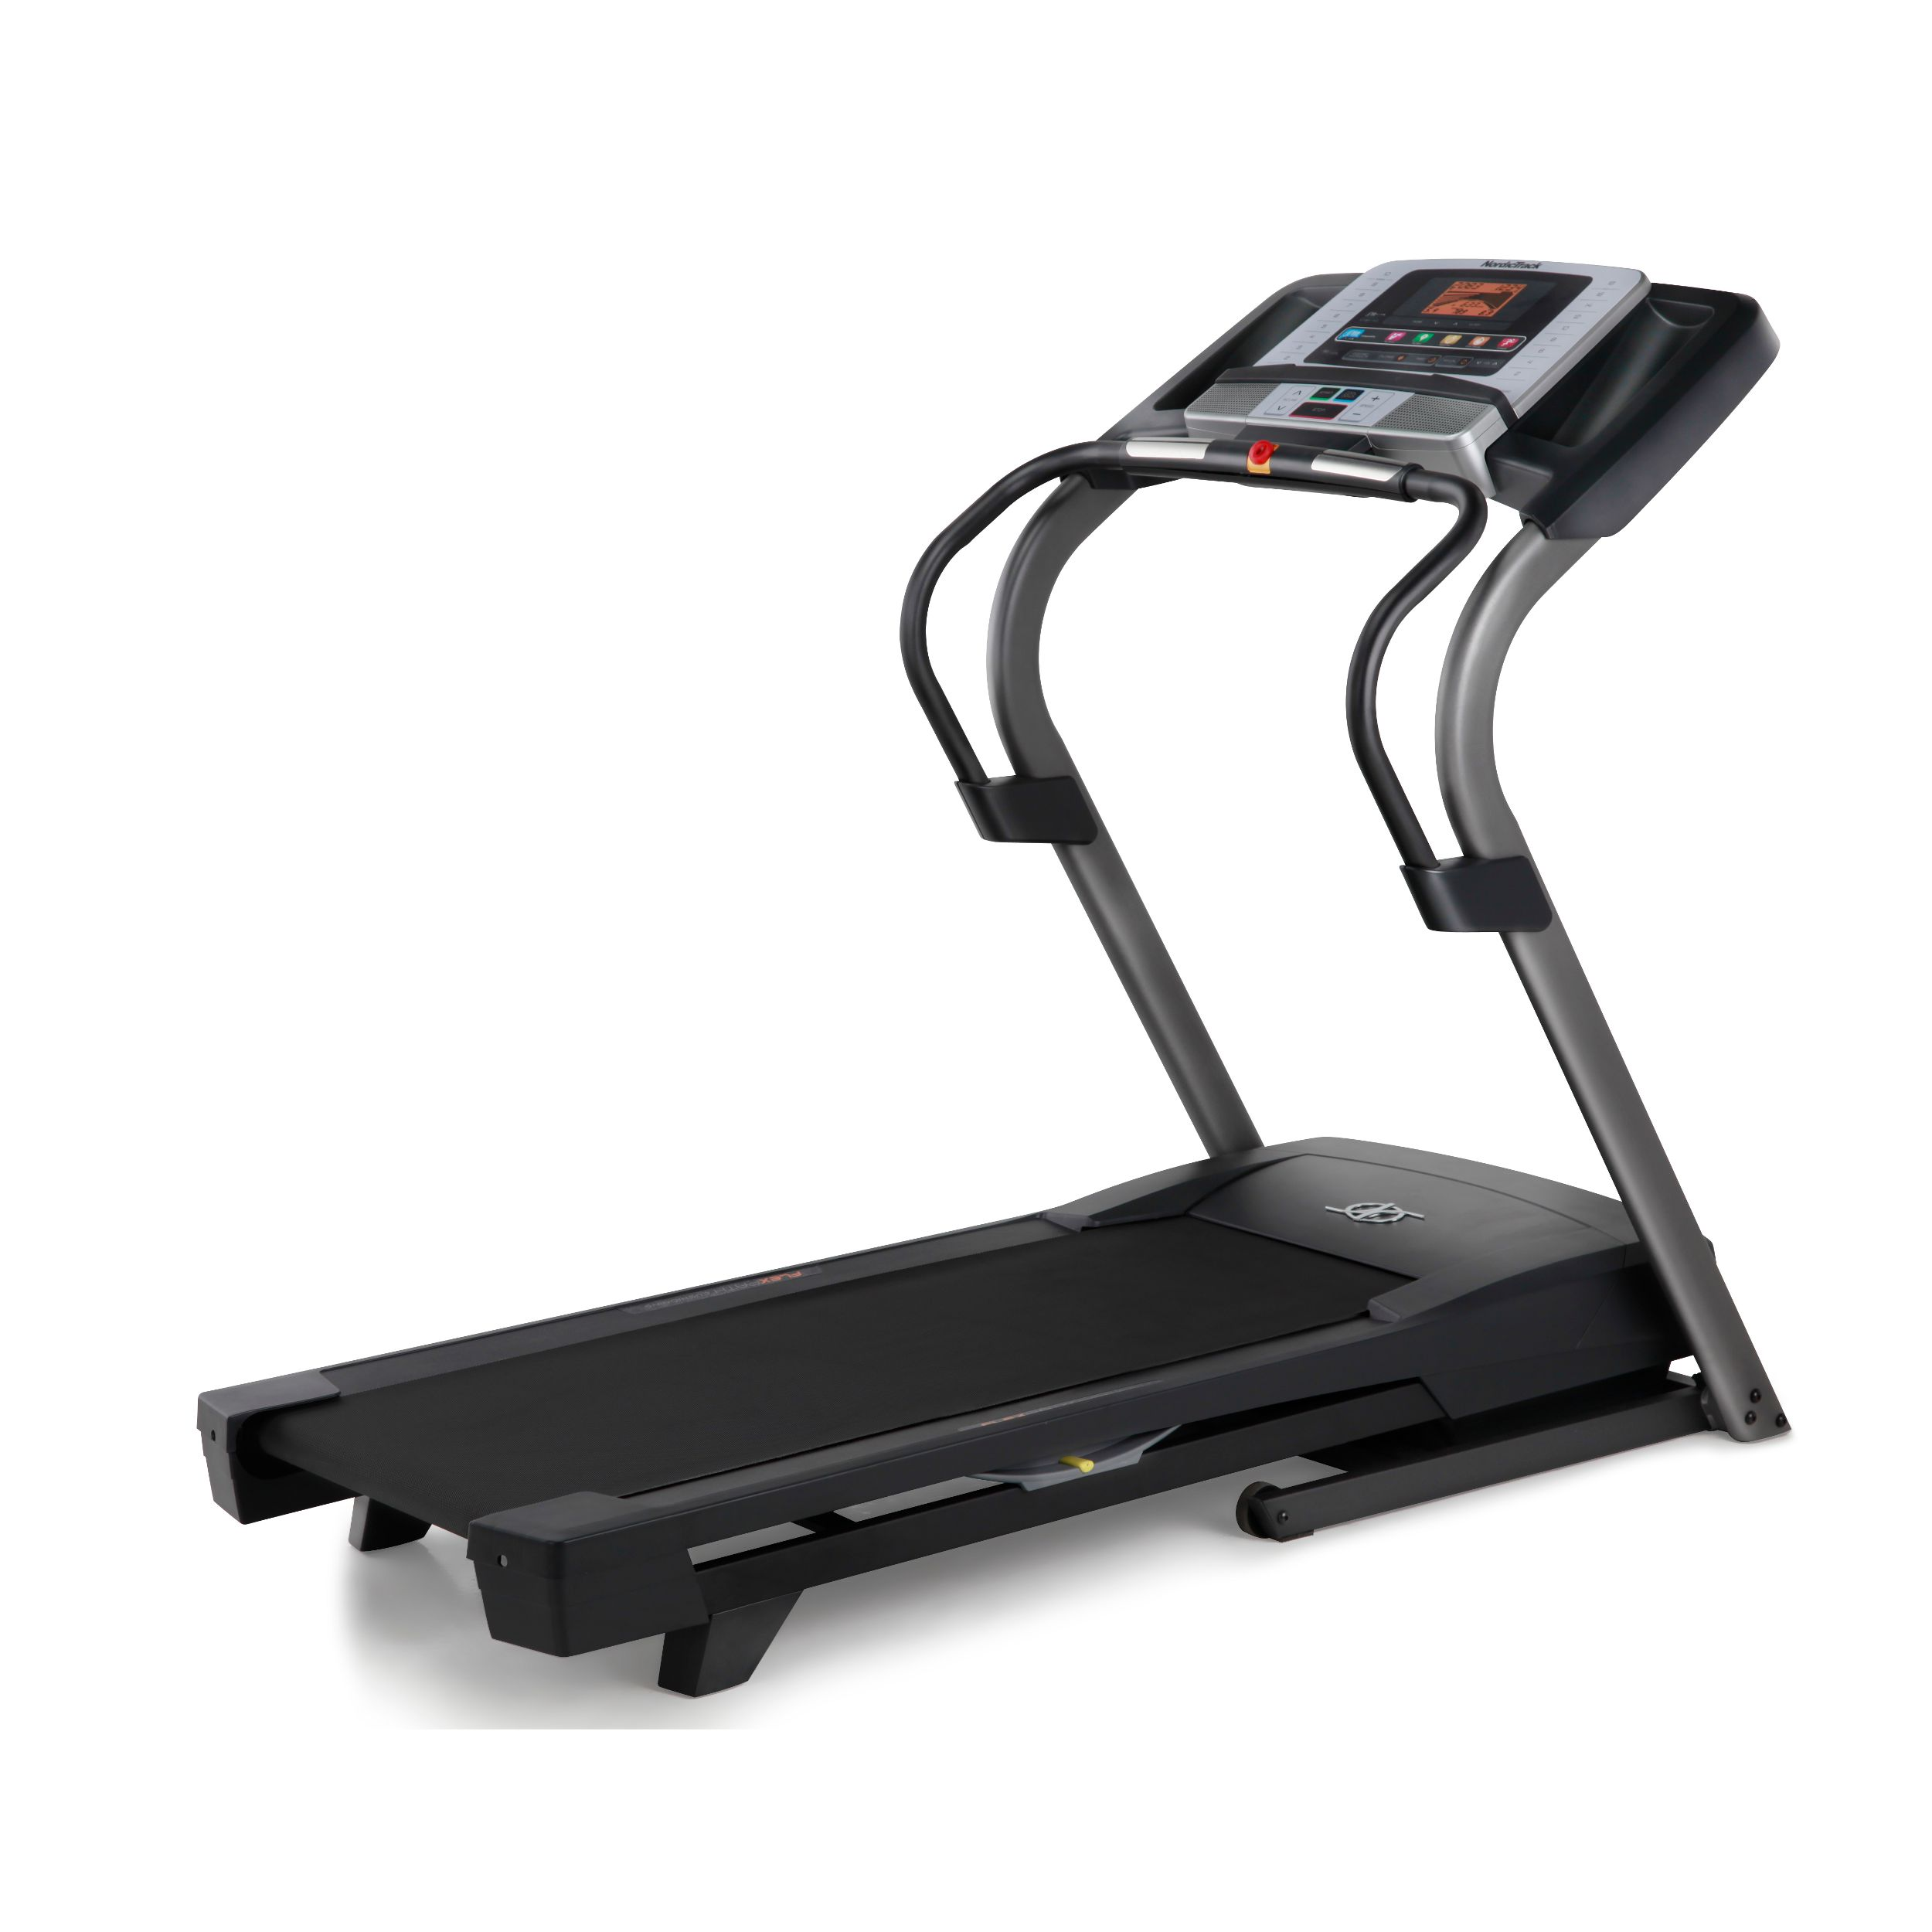 NordicTrack T8.0 Treadmill with iFit Live